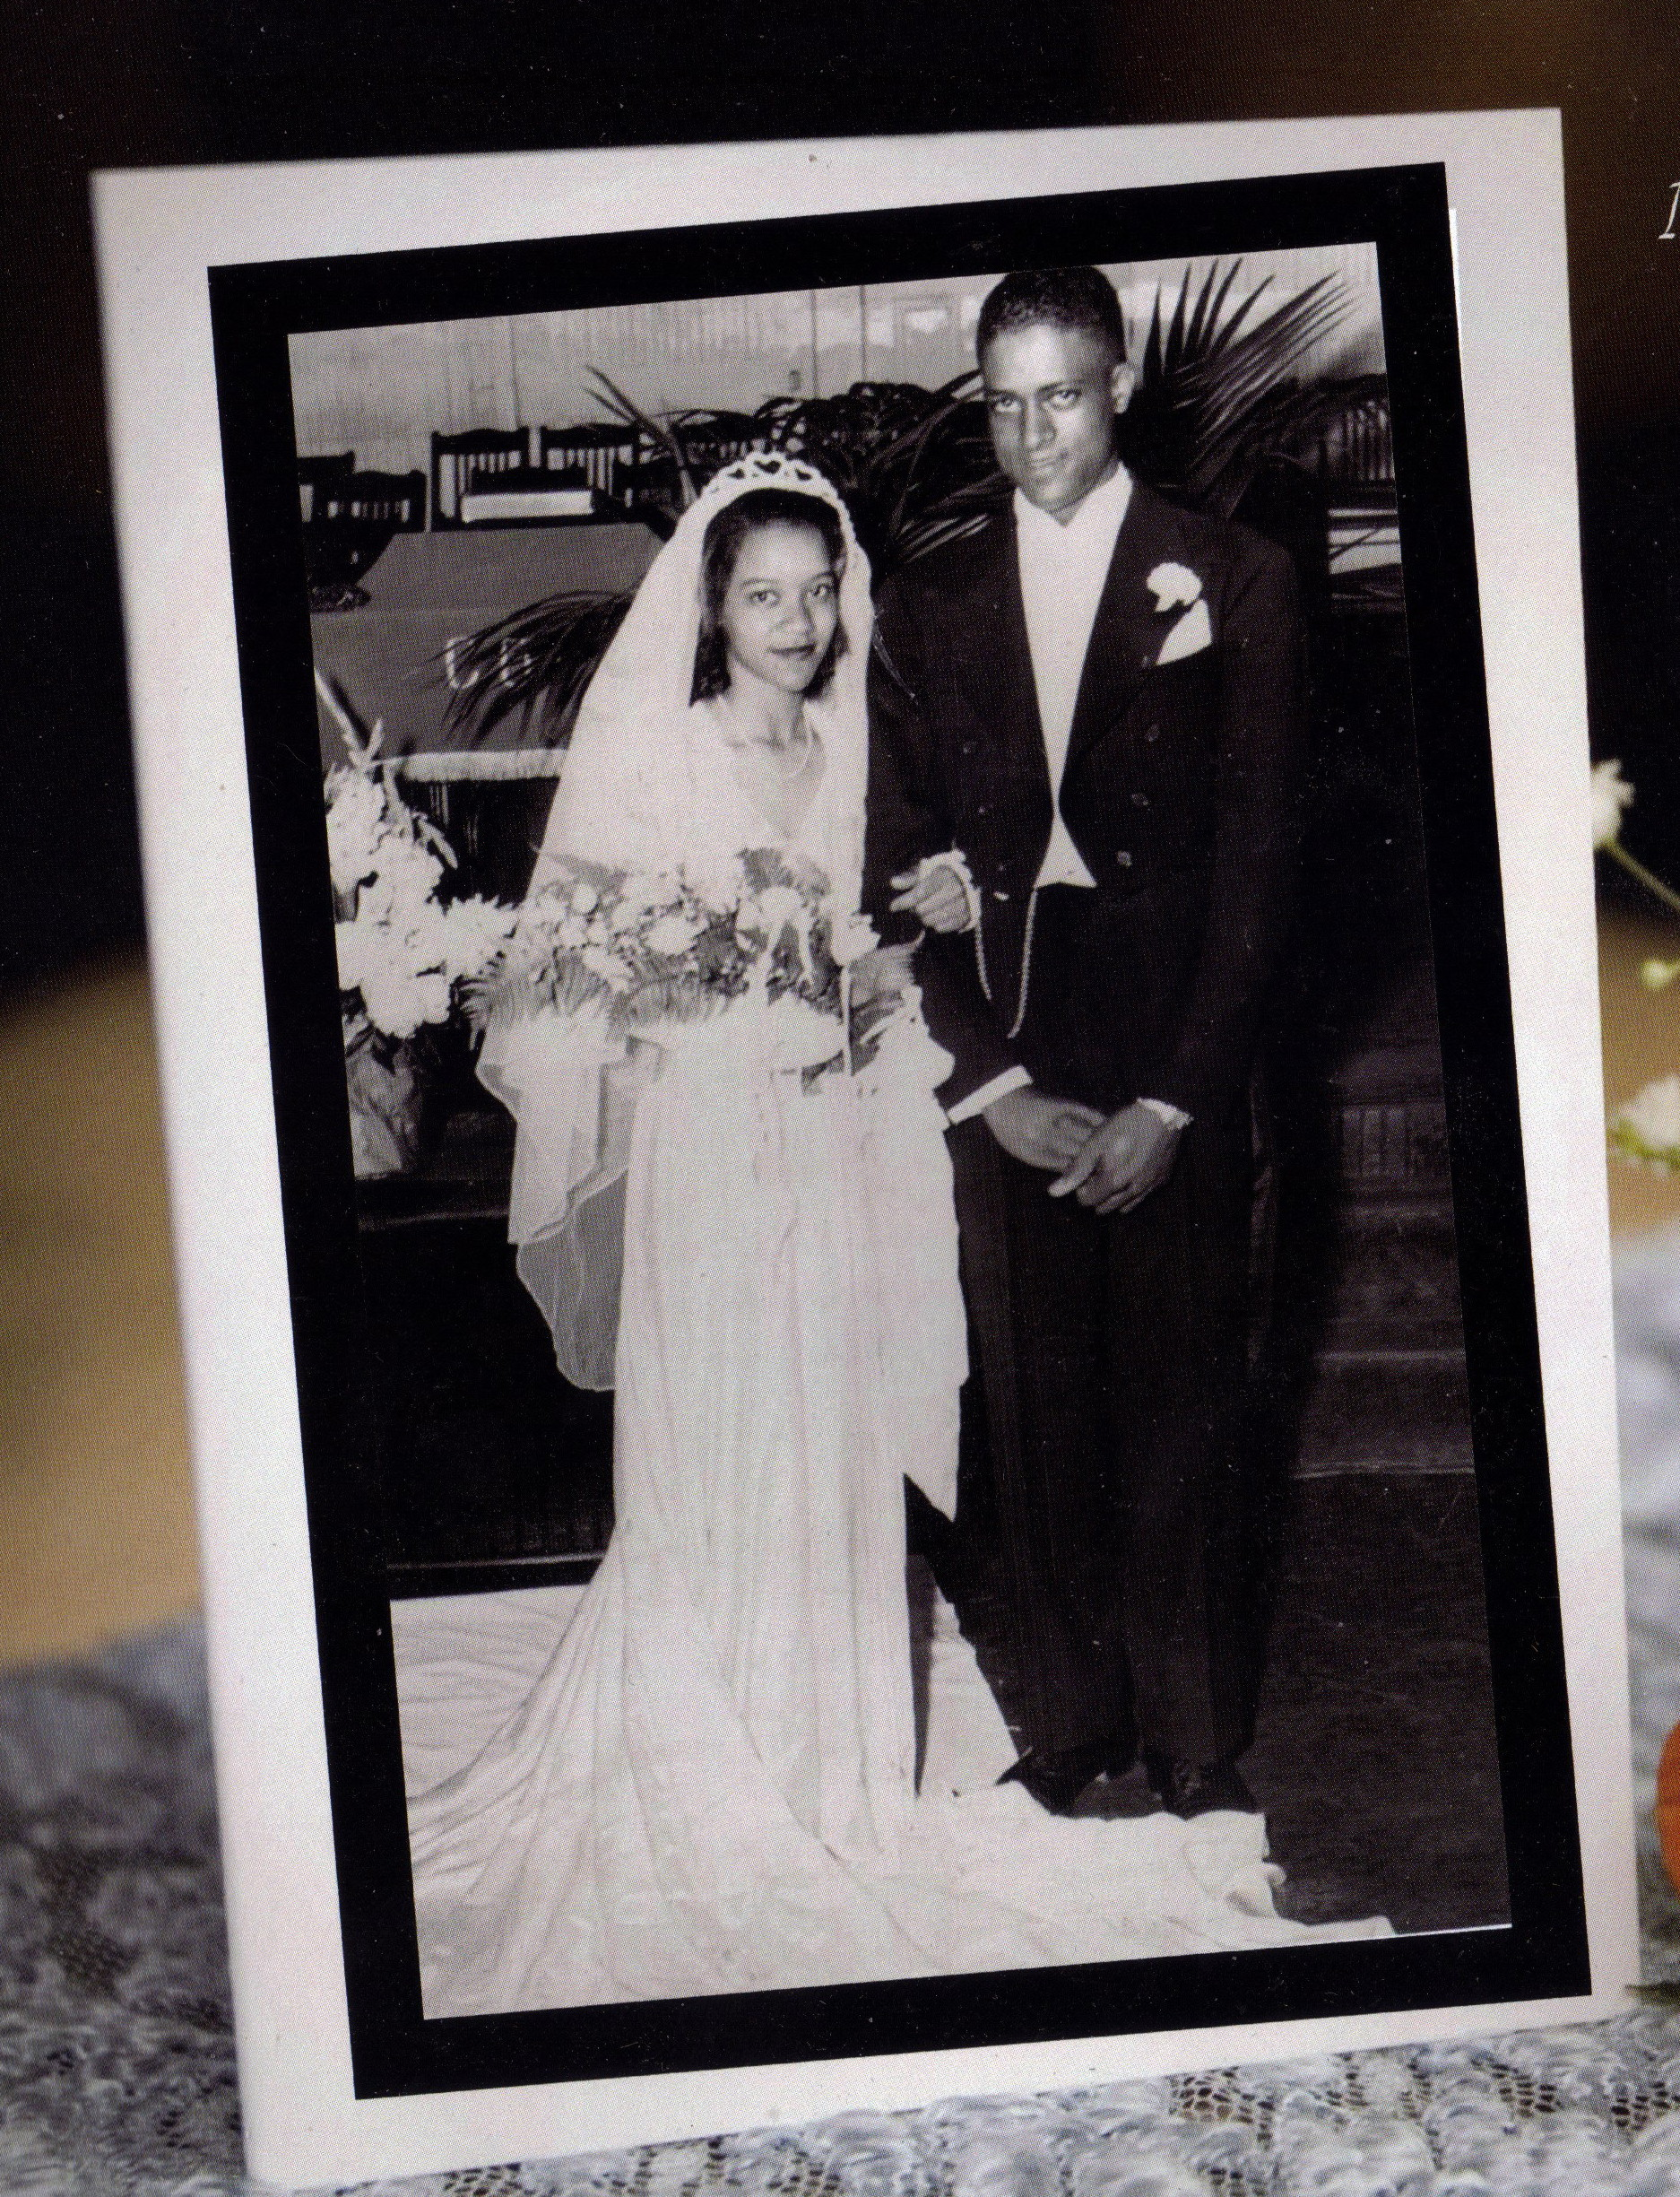 mom-and-dad-wedding-day-1946-e1467890580863